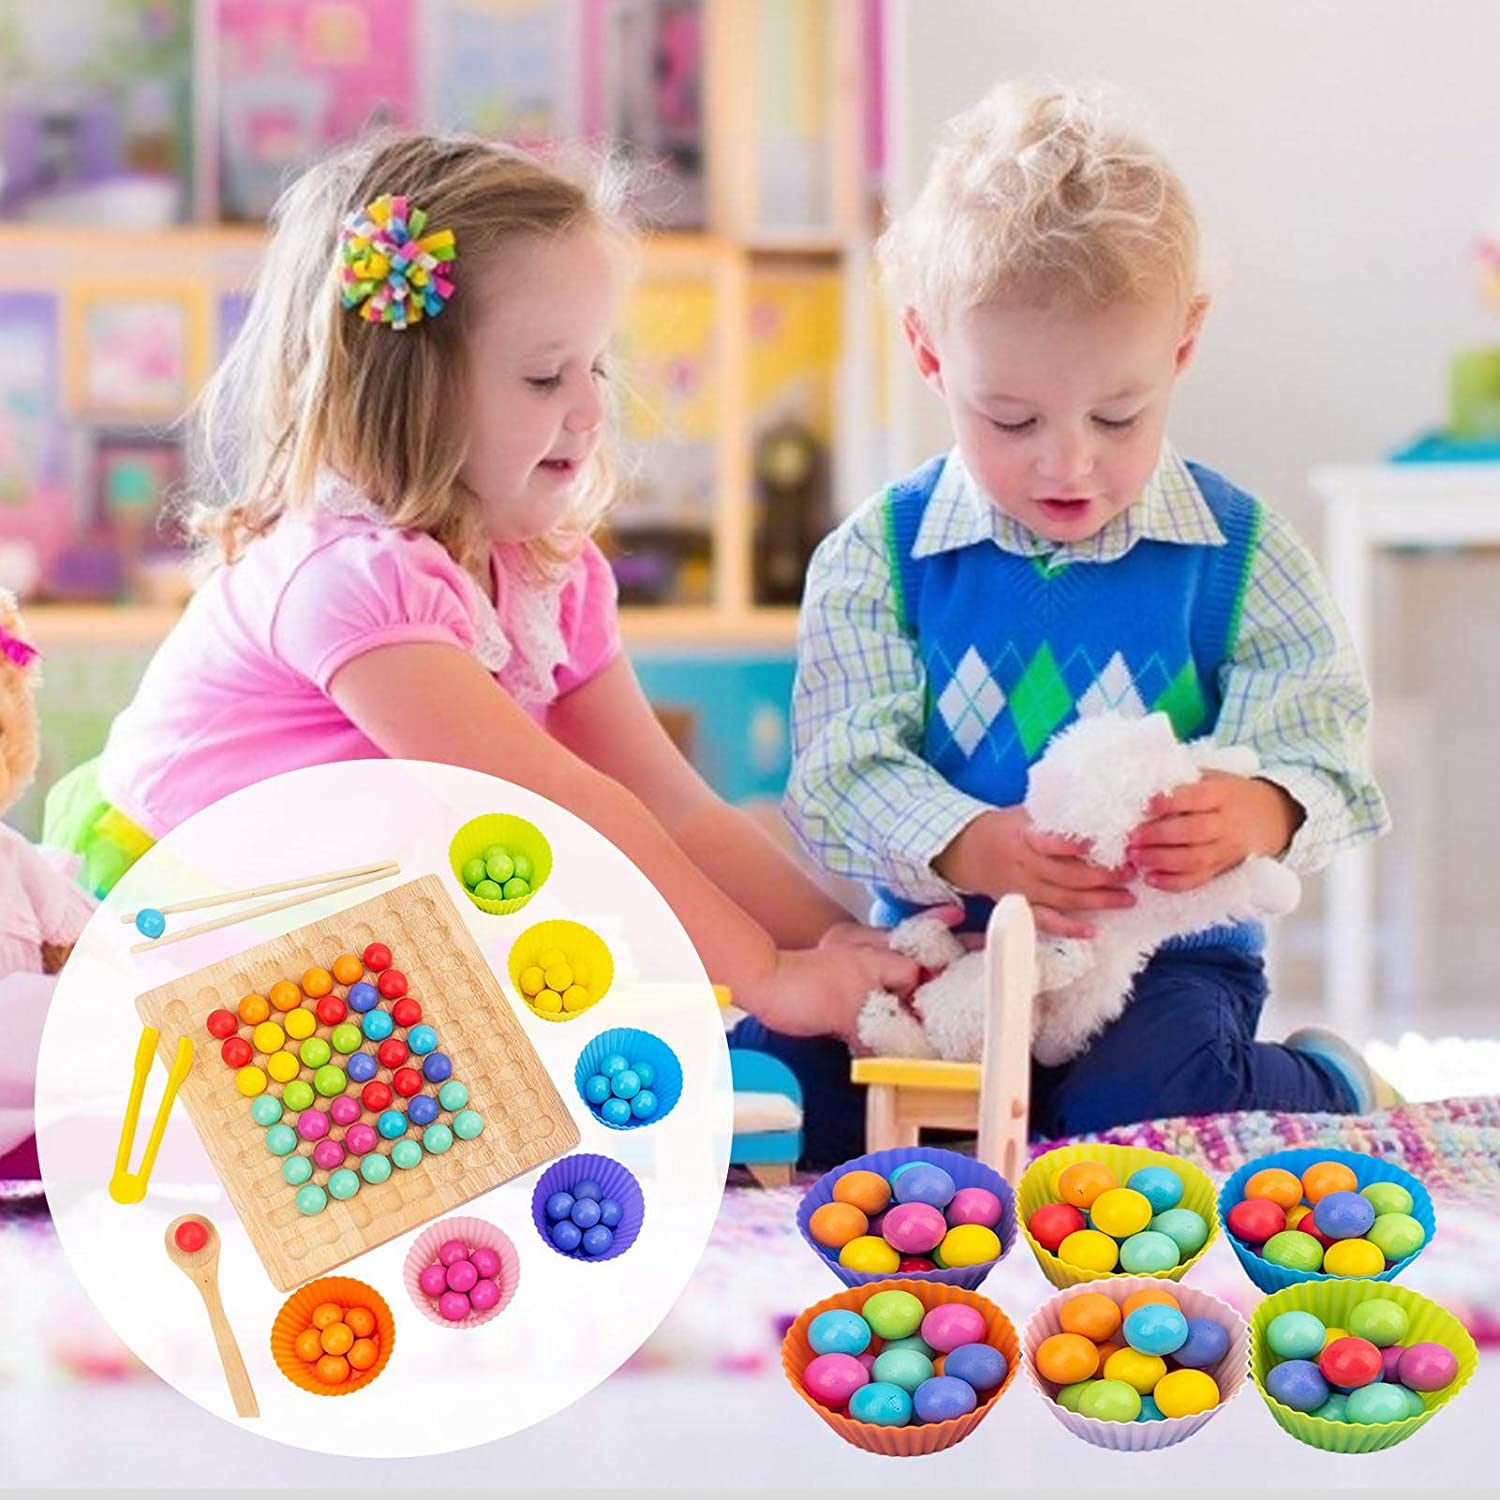 Wooden Go Games Set Dots Shuttle Beads Board Games,Wooden Clip Beads Rainbow Toy,Holz Go Spiele Set Dots Shuttle Perlen Brettspiele,Holz Clip Beads Rainbow Toy Early Education Puzzle Brettspiel